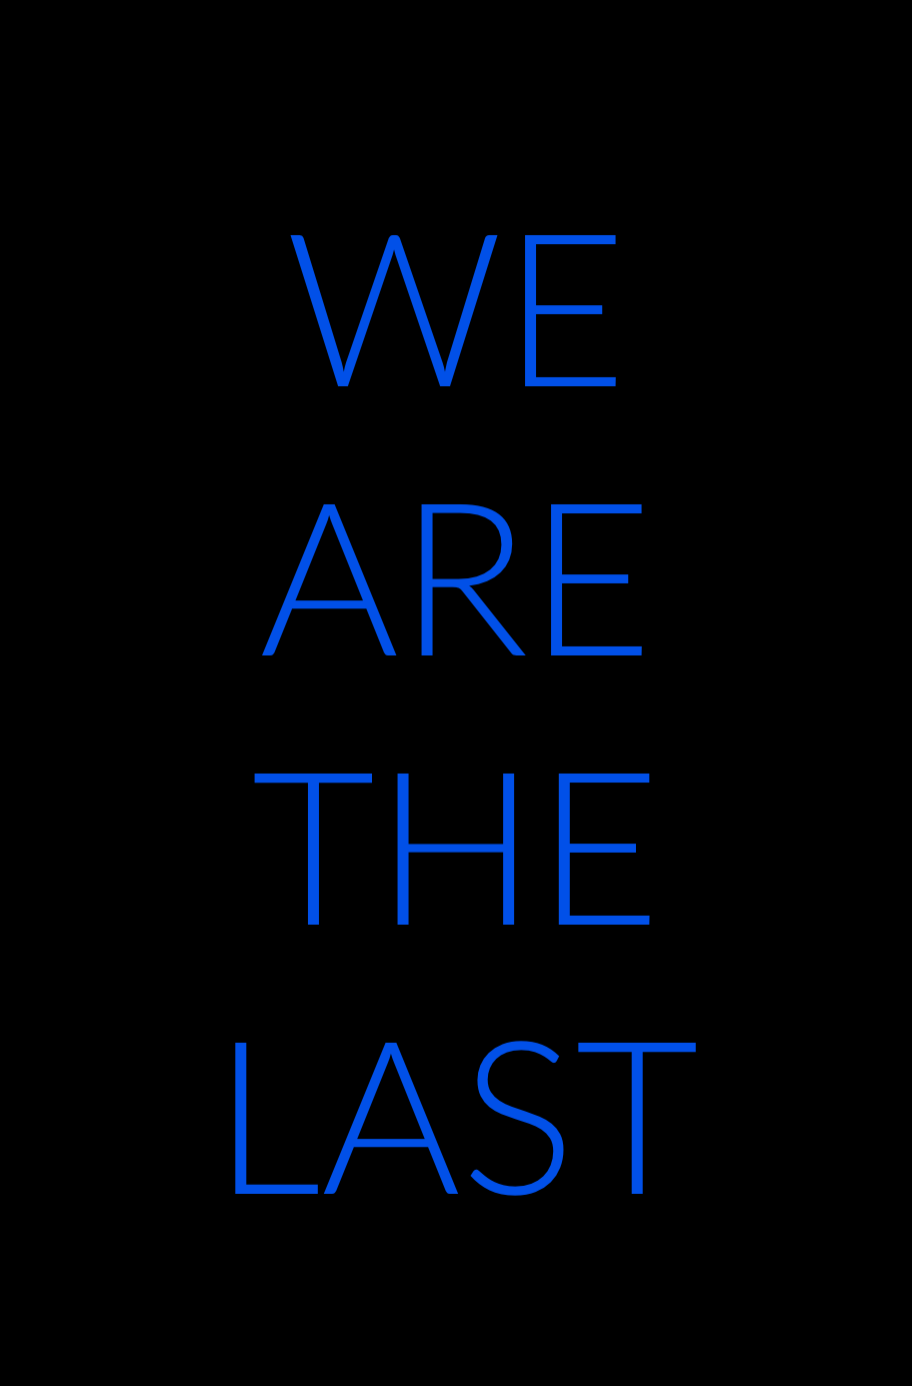 We Are the Last Poster.png